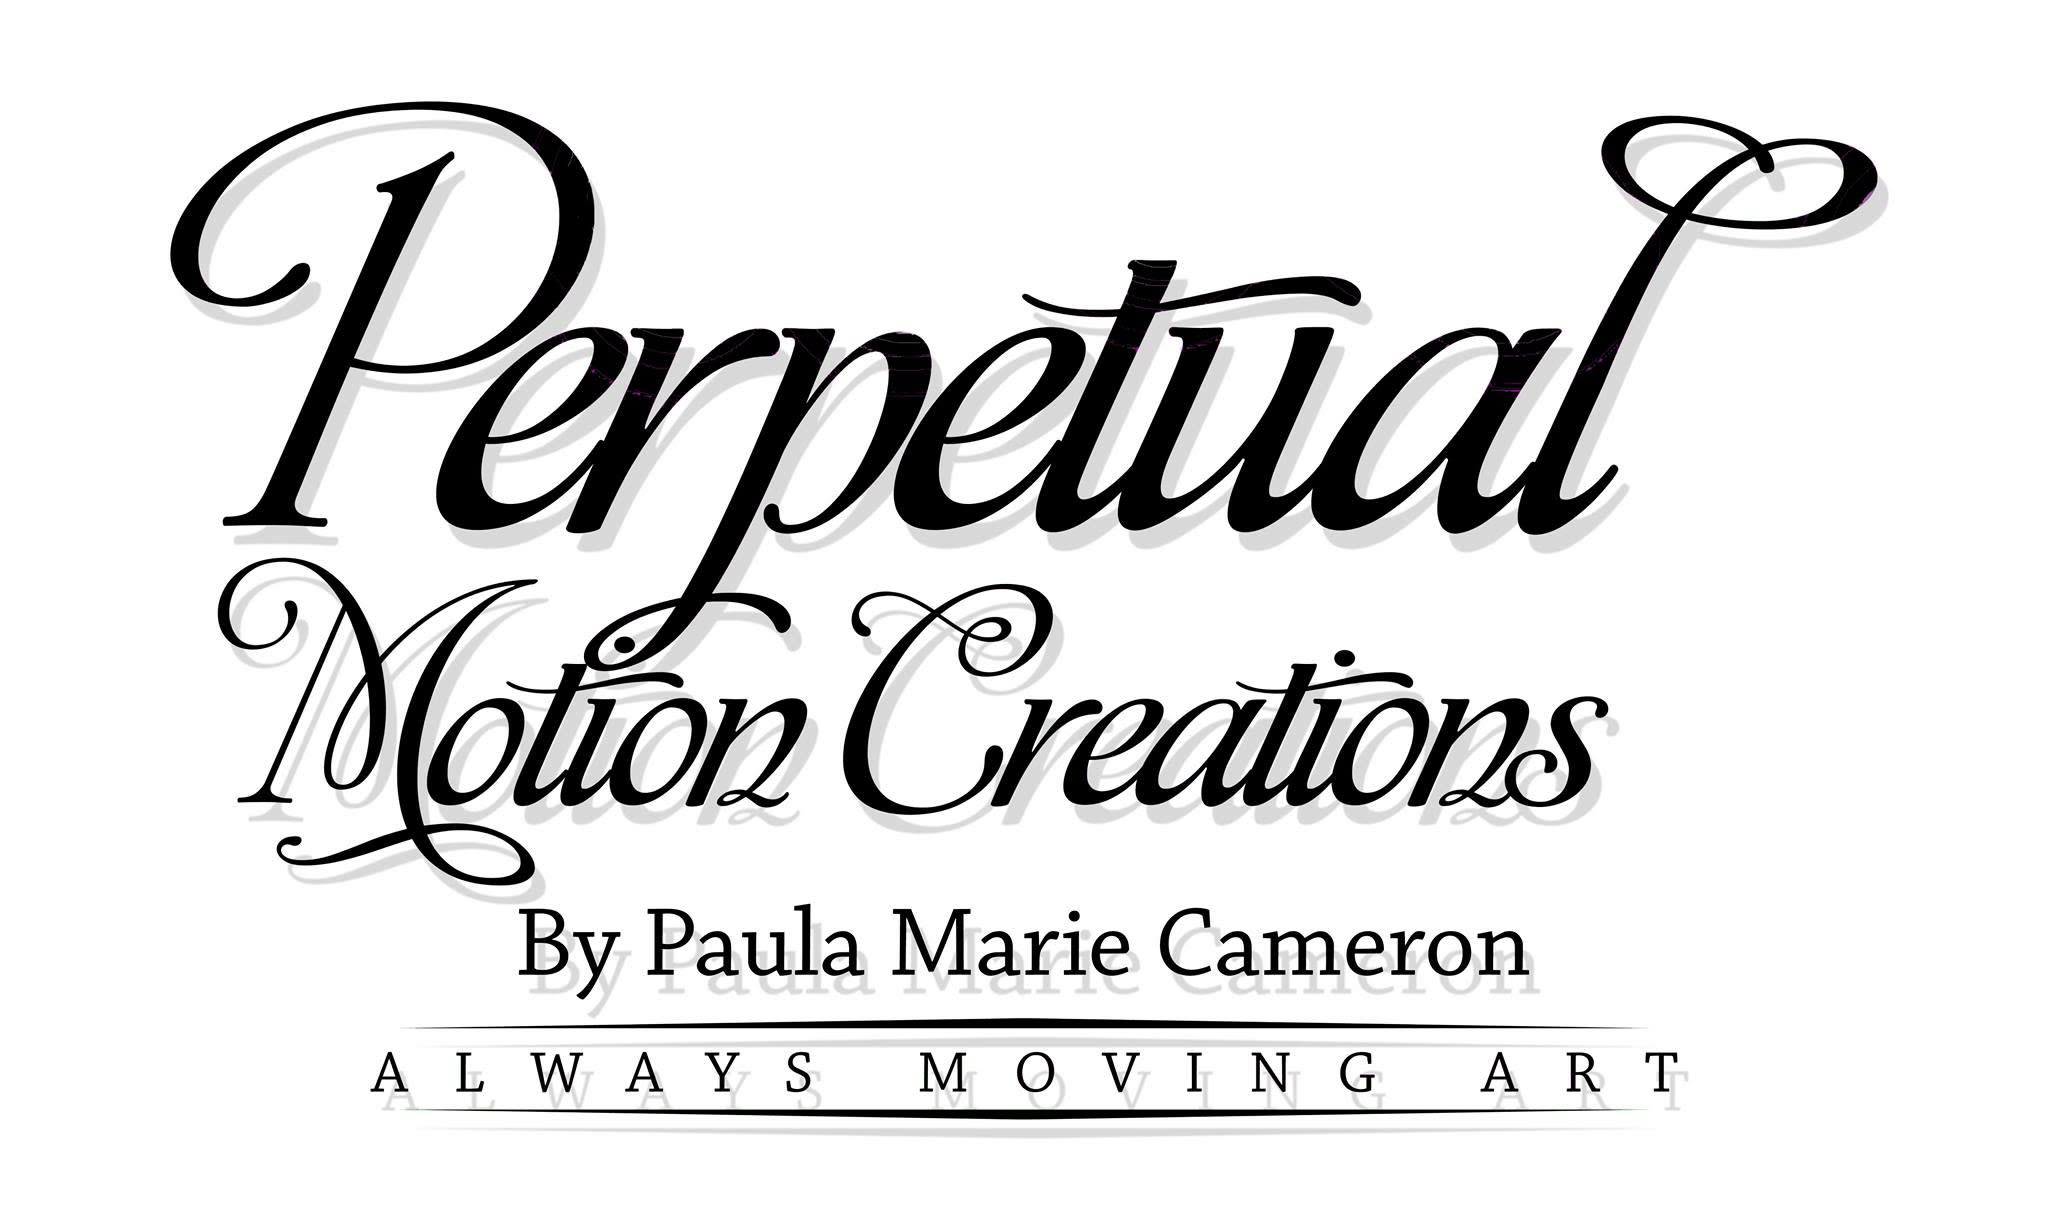 Perpetual Motion Creations